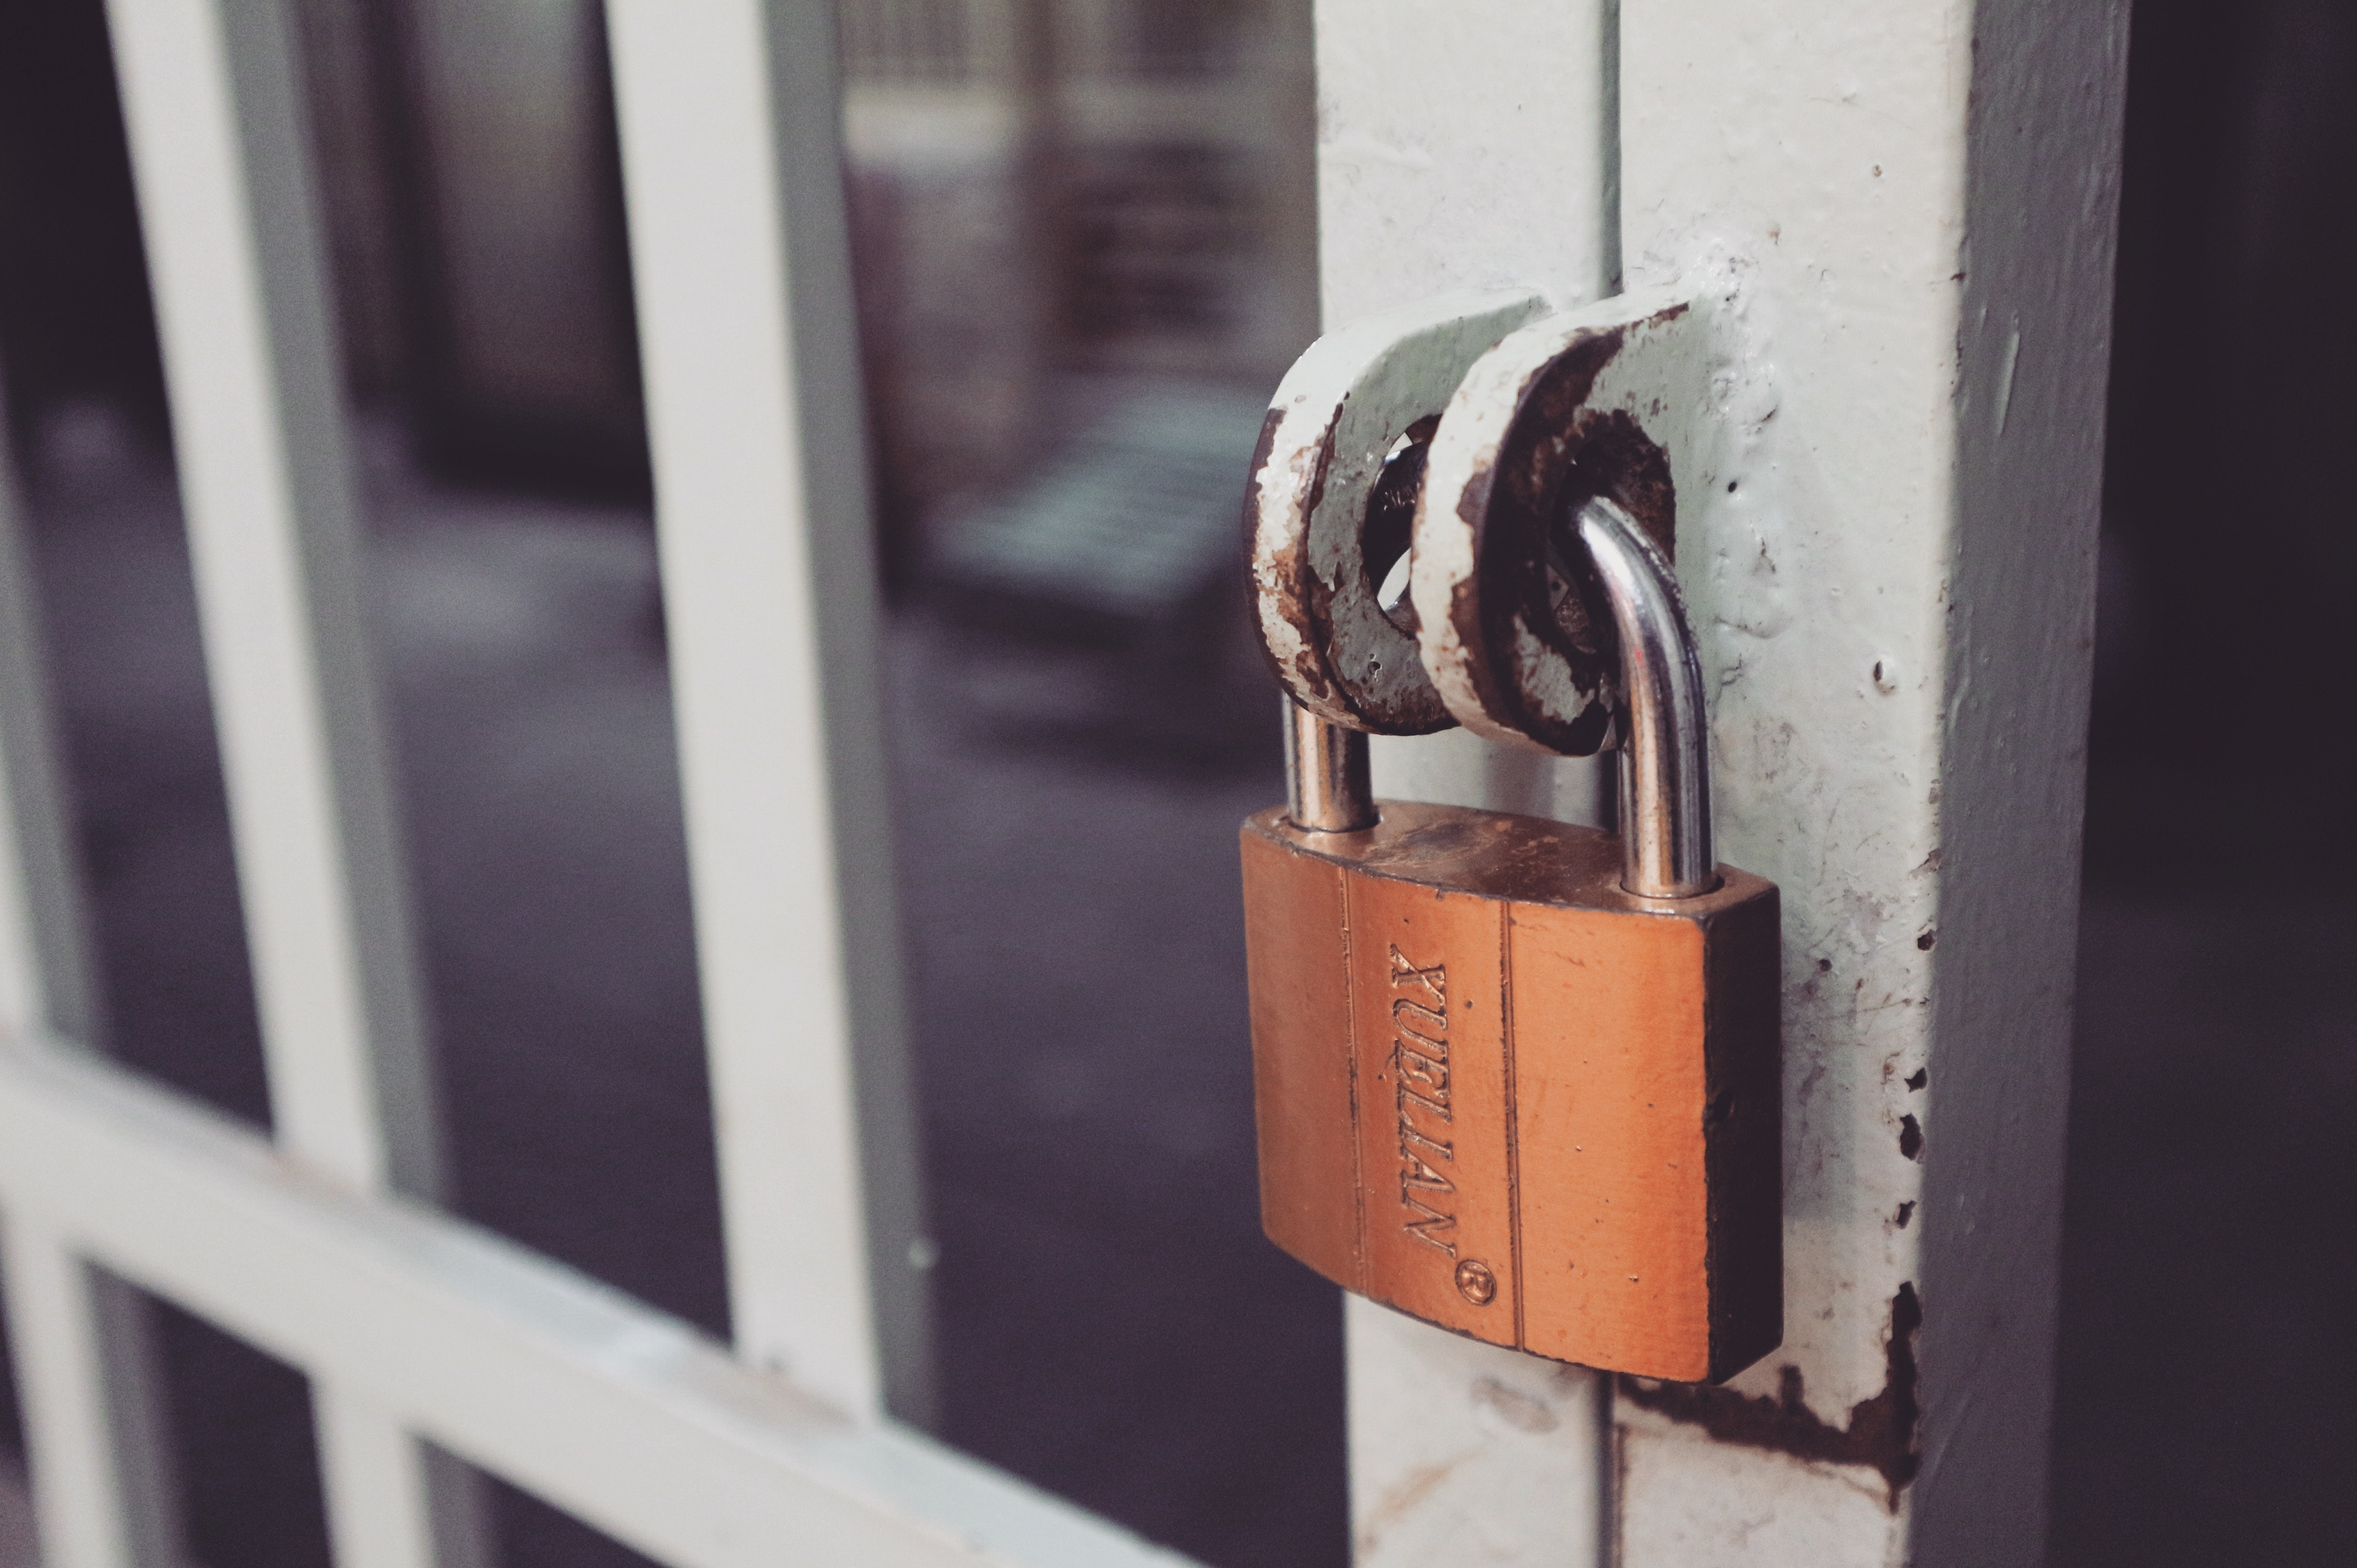 Brass Colored Metal Padlock With Chain 183 Free Stock Photo